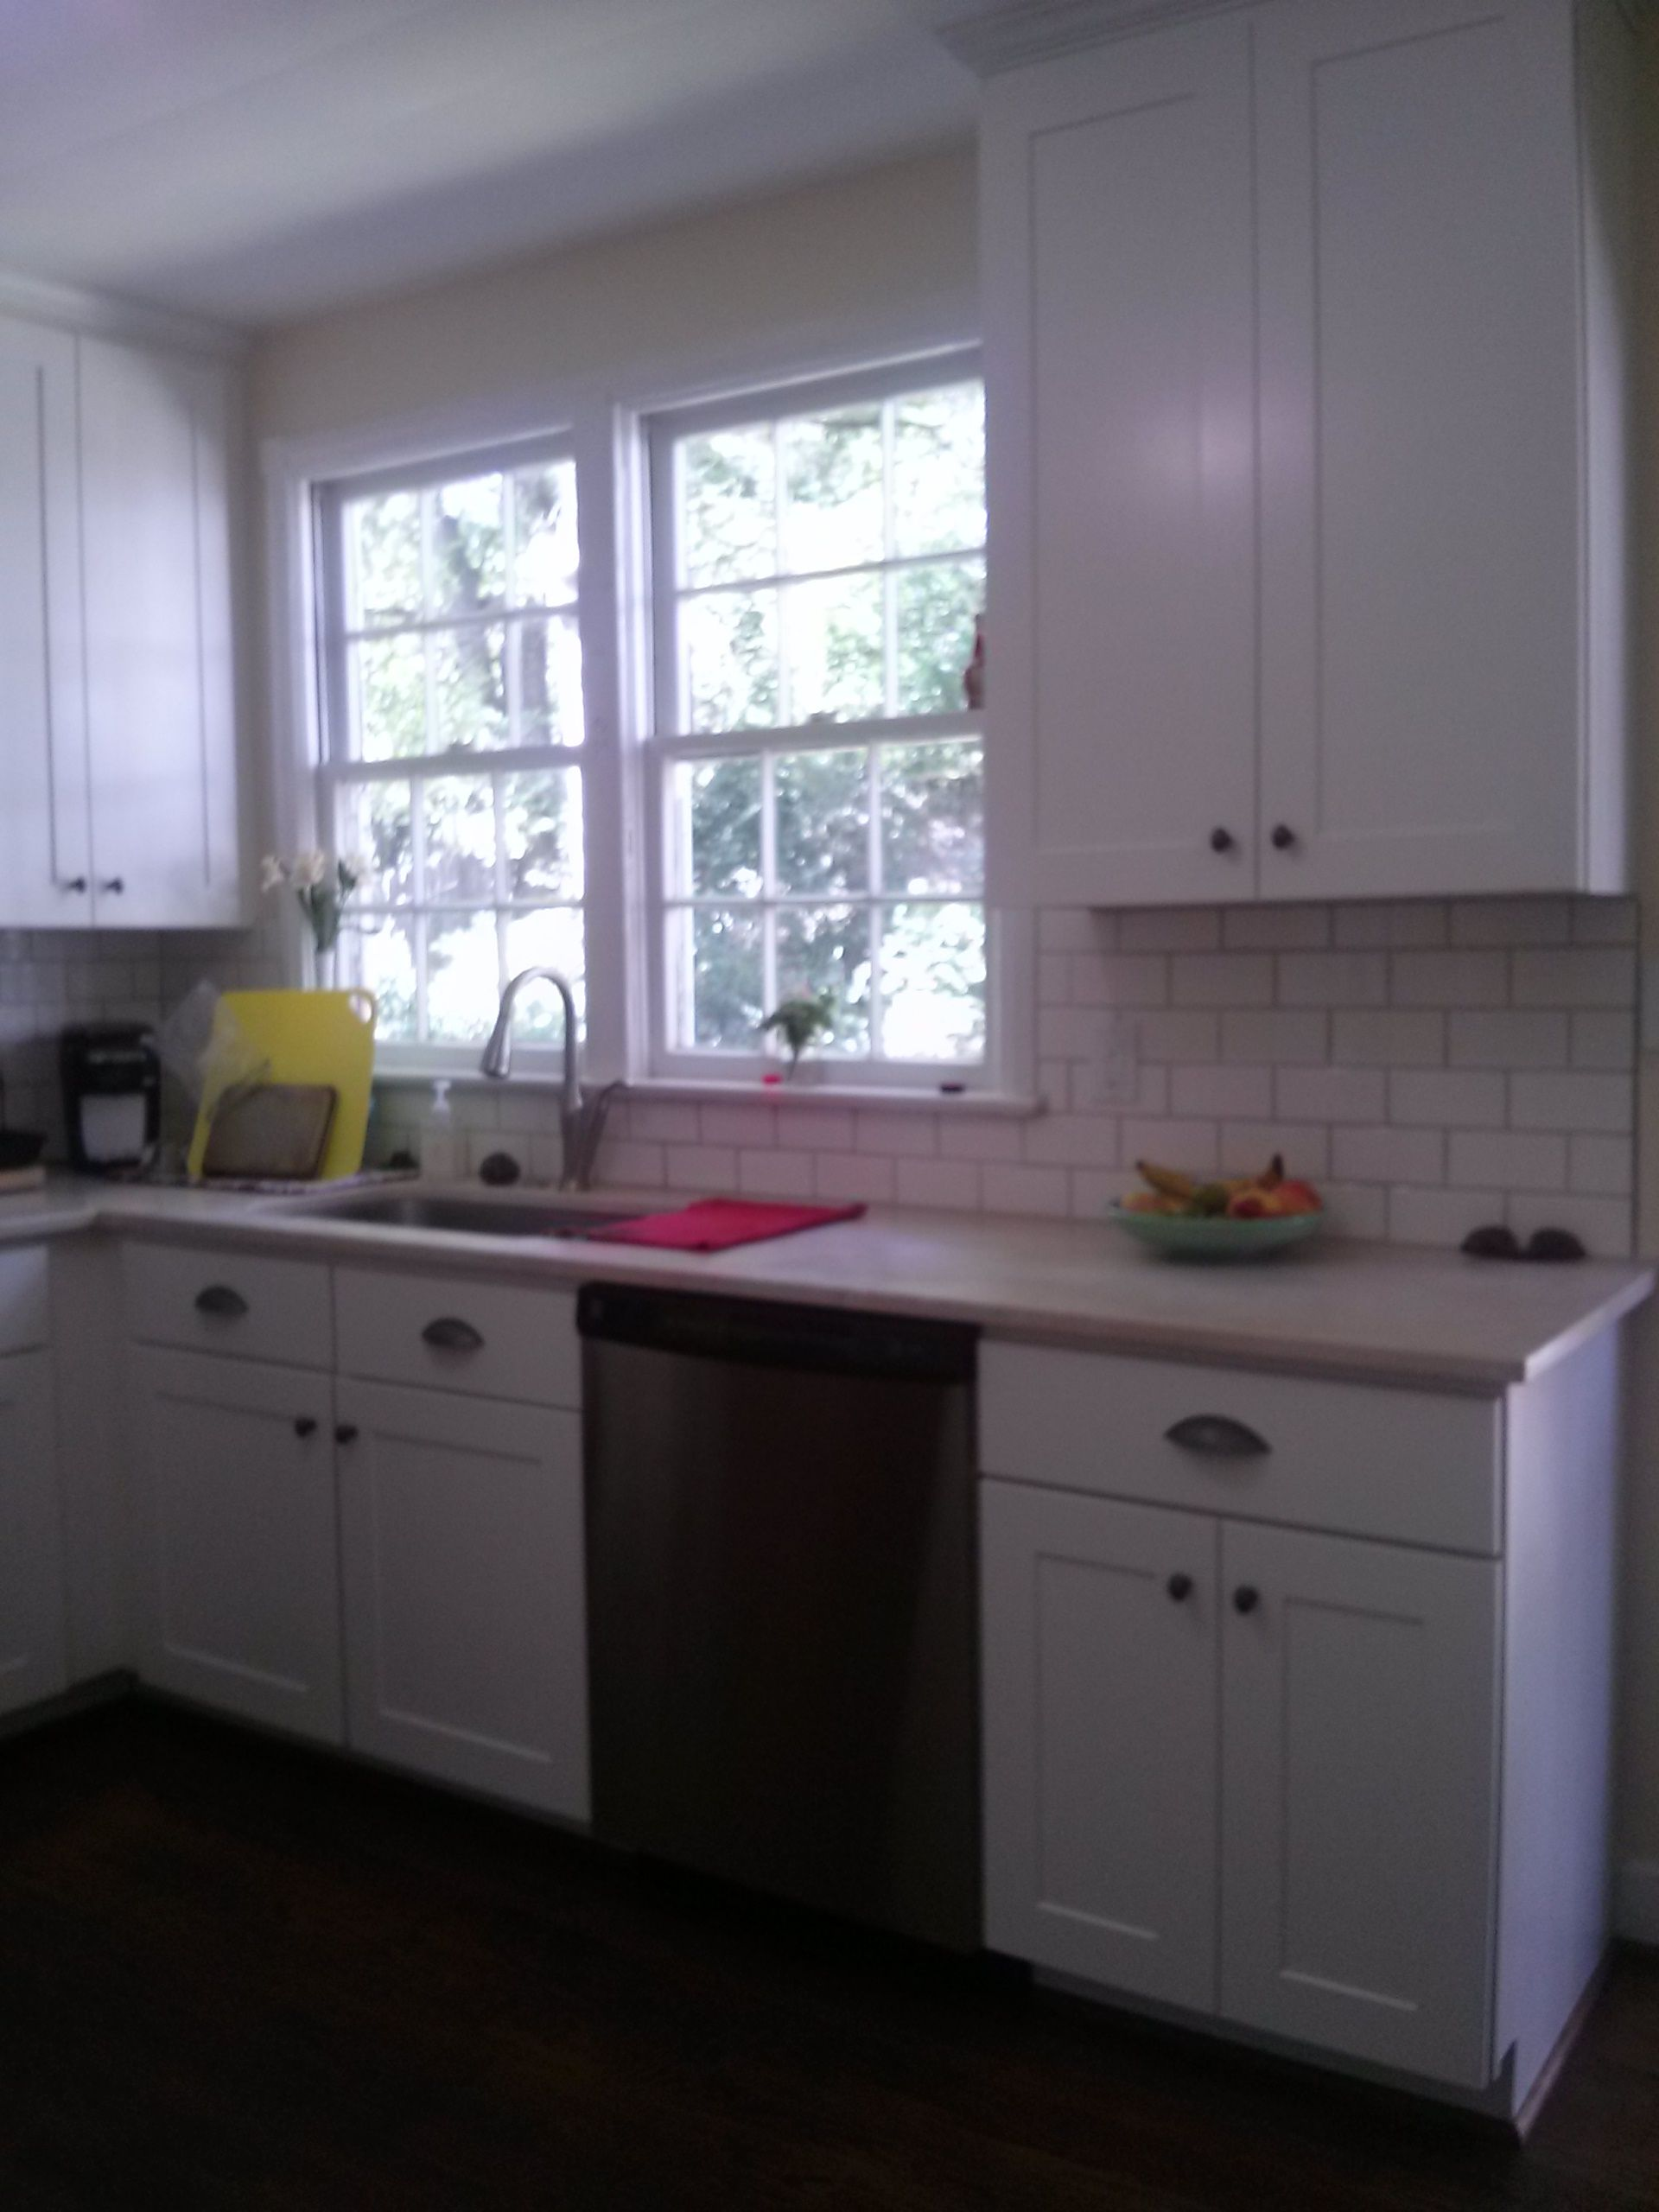 kitchen remodel avondale (birmingham) alabama | kitchens designed by